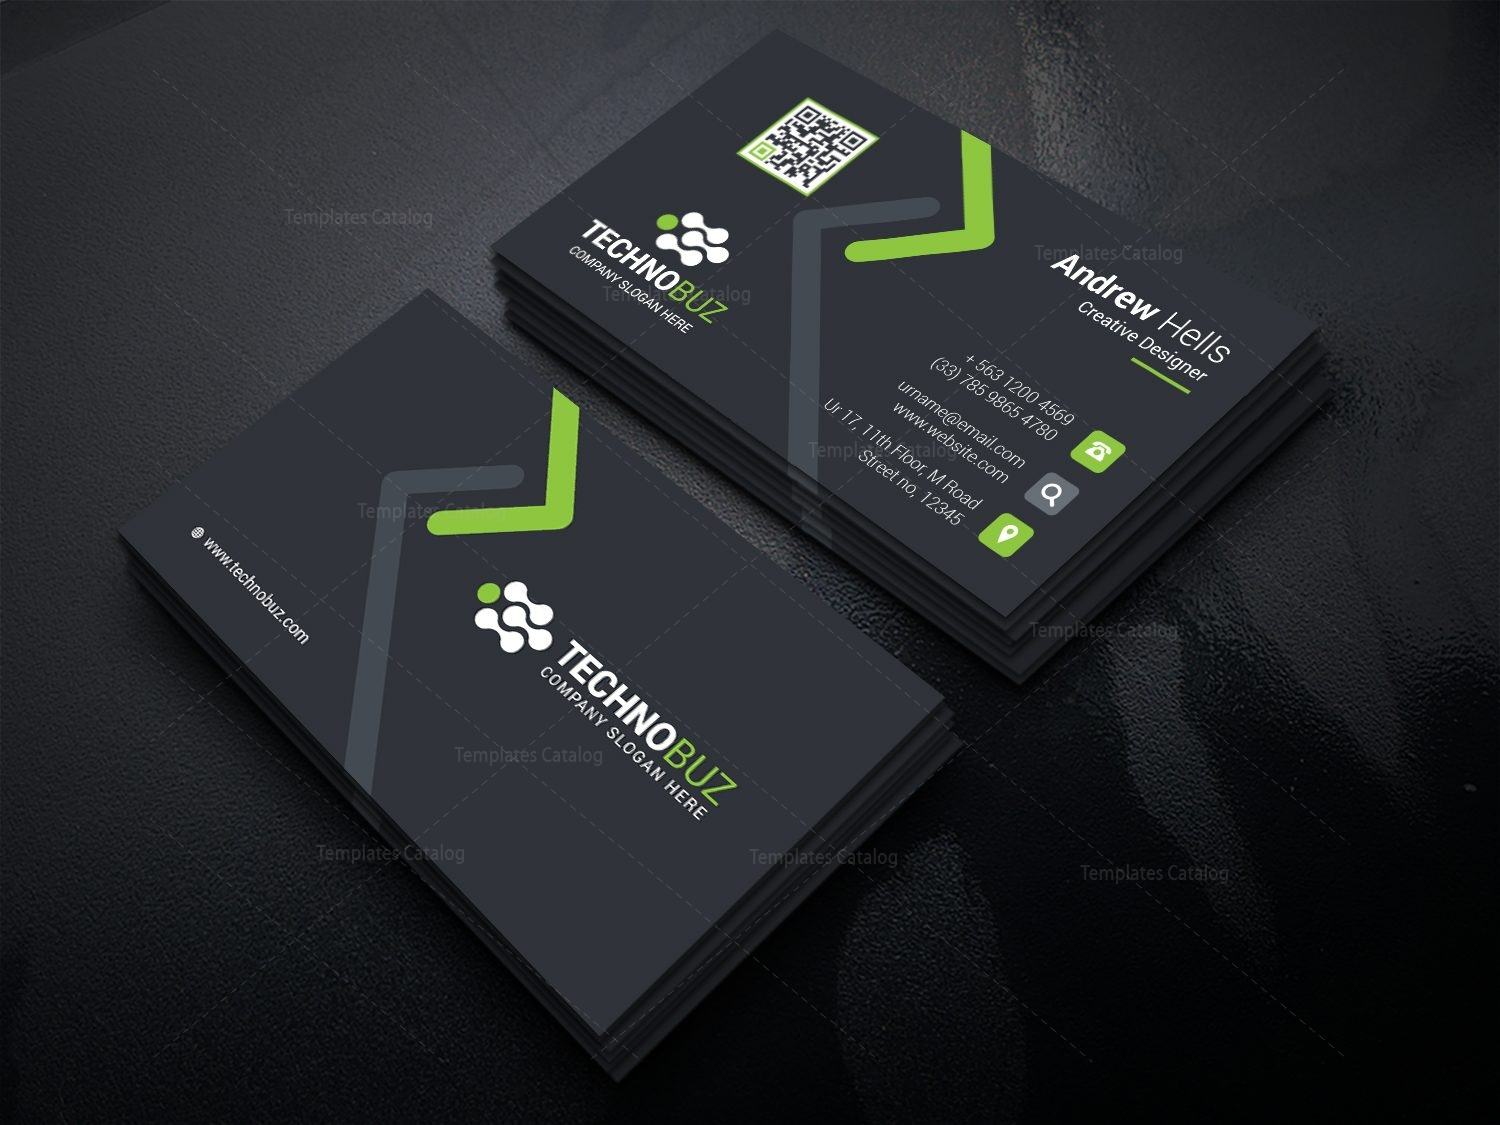 High tech company business card template 000736 template catalog high tech company business card template 5 cheaphphosting Image collections